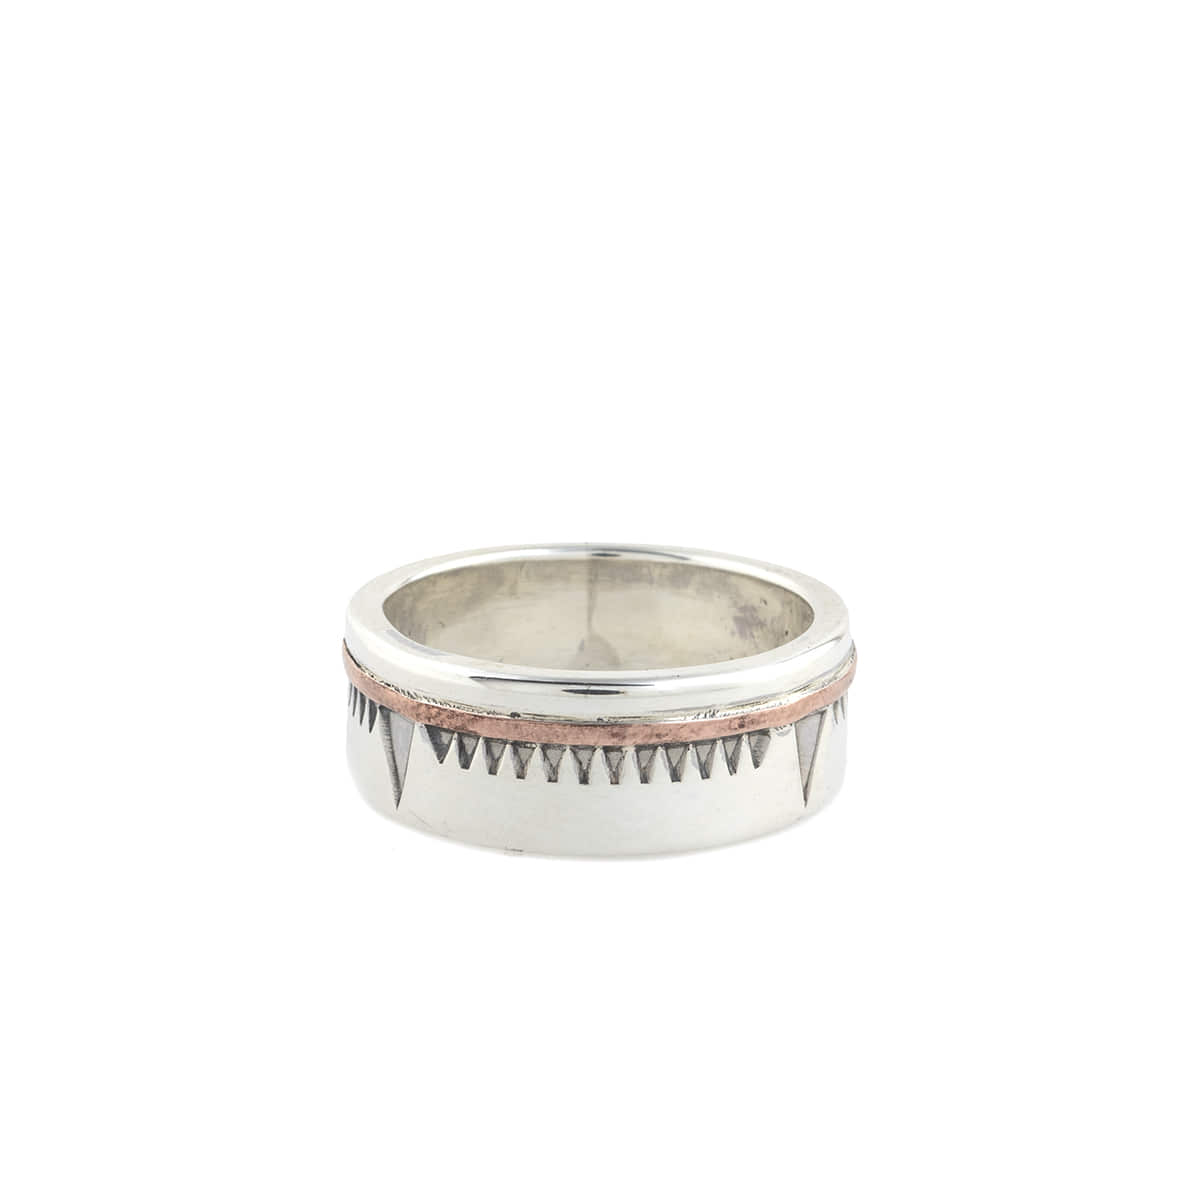 [NORTH WORKS] 900 SILVER RING 'W-505'